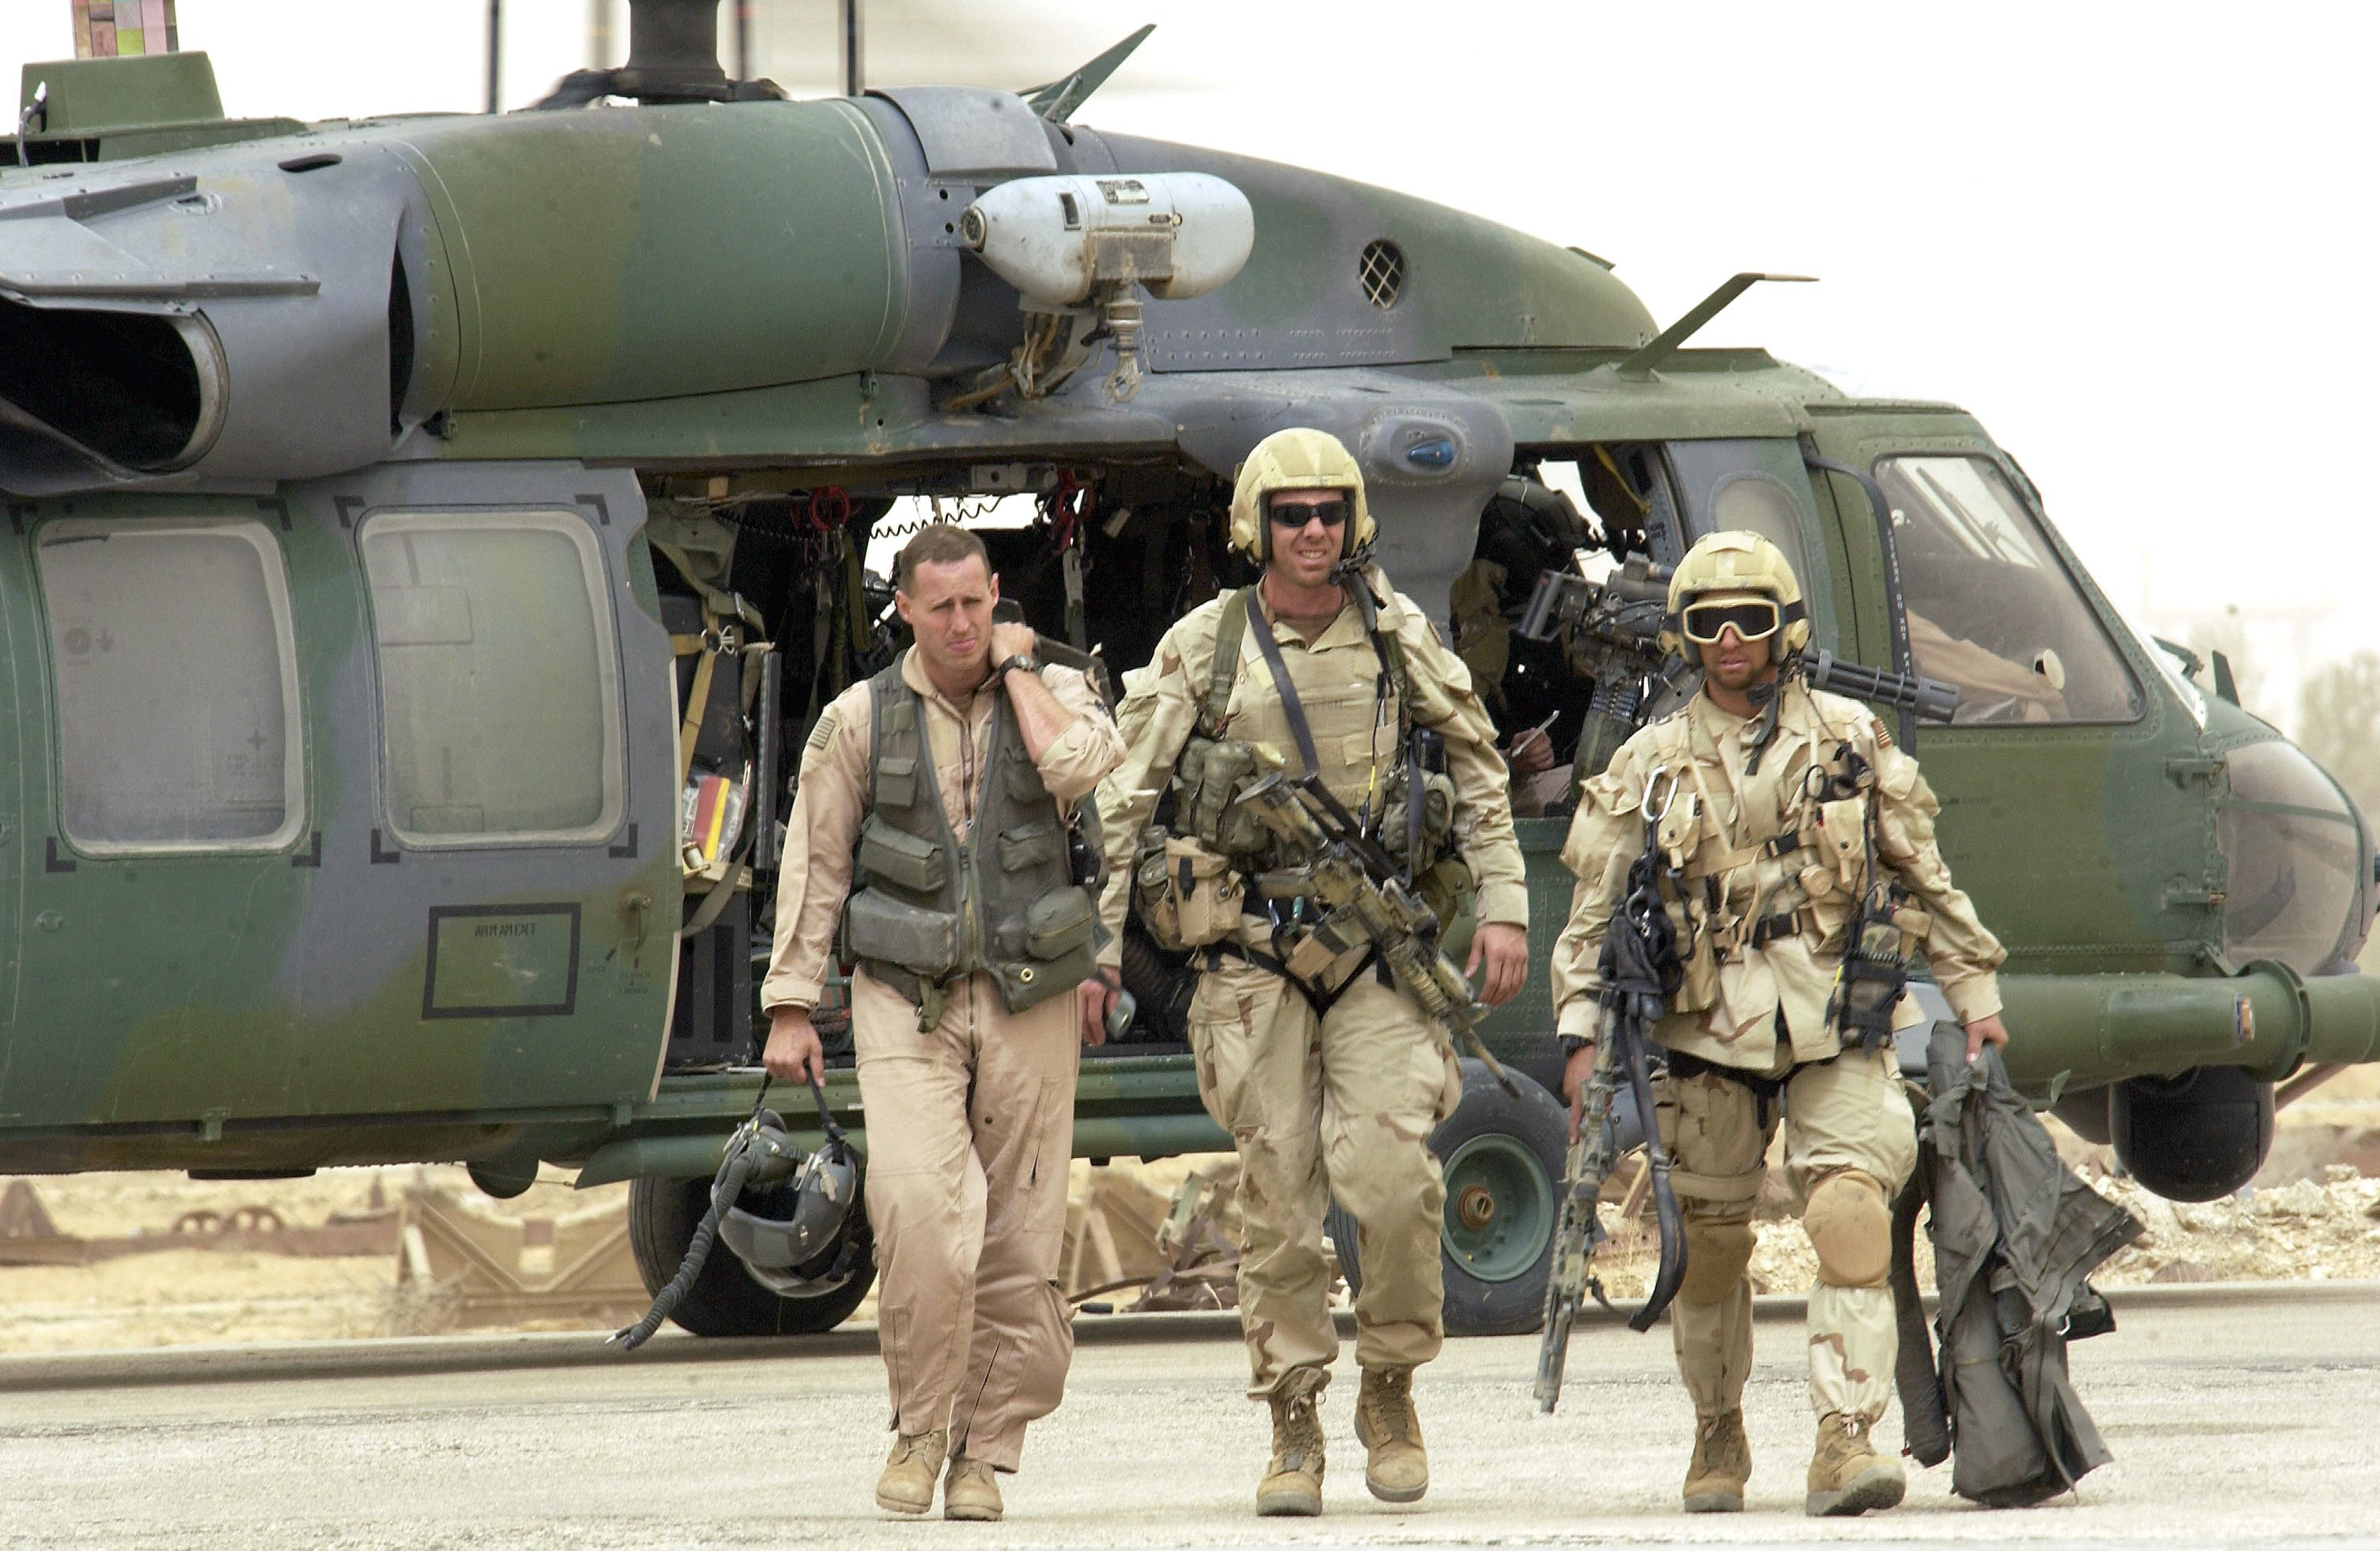 Combat search and rescue Wikipedia, the free